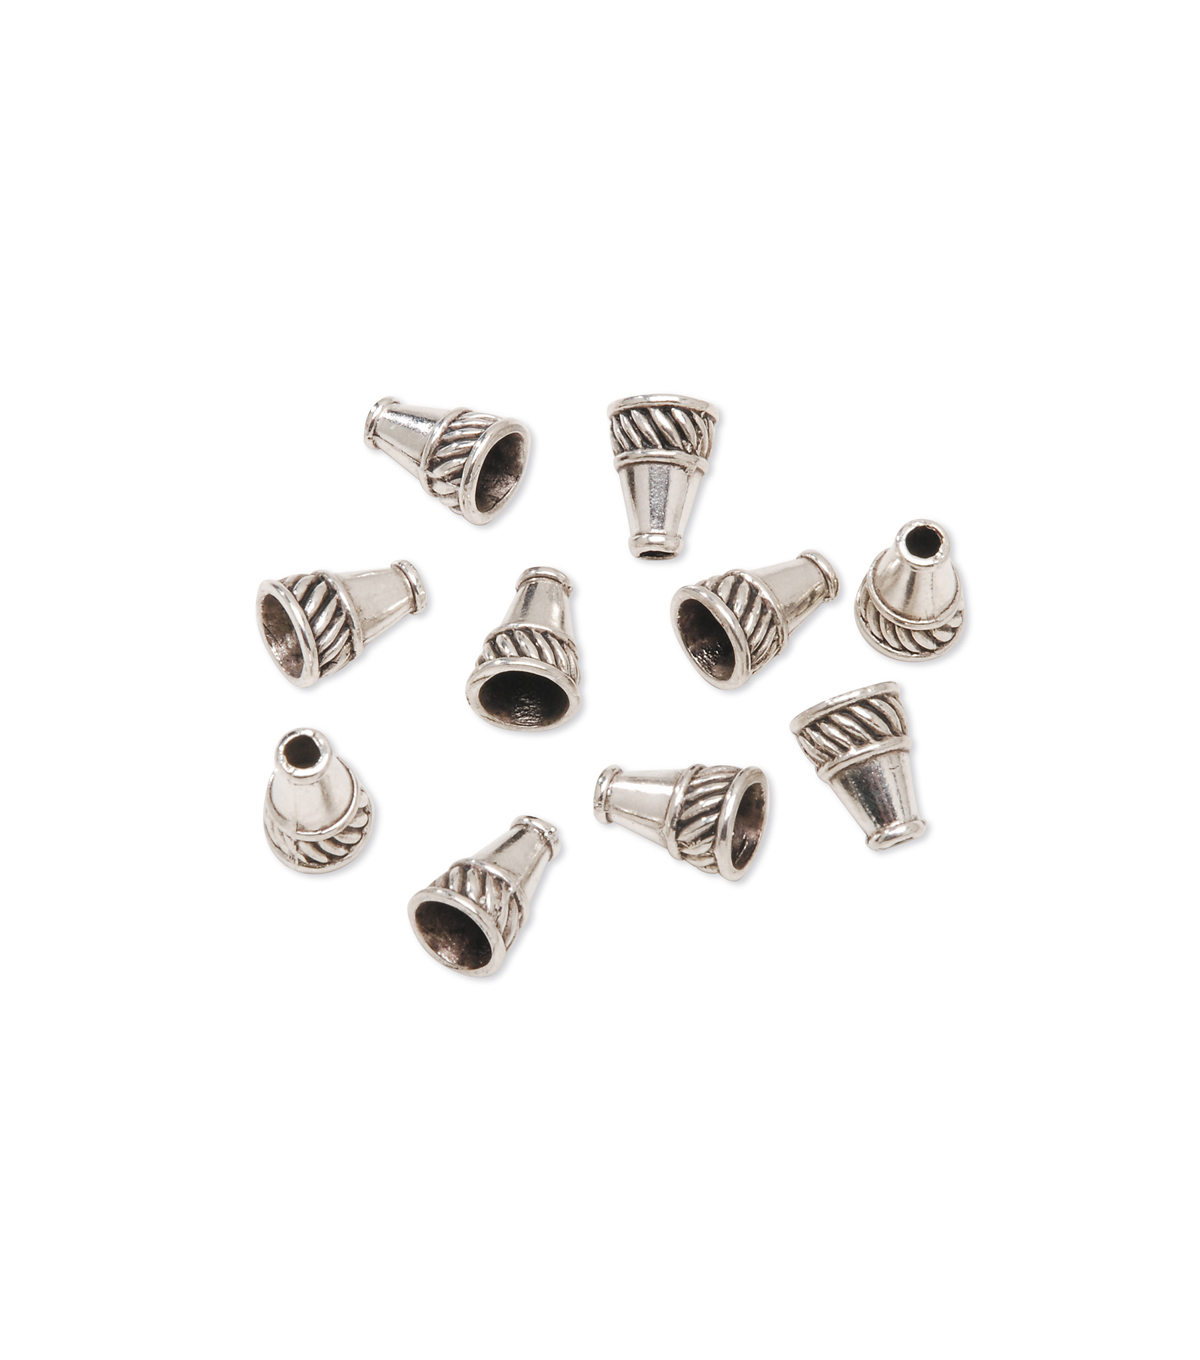 Silver Plated Metal Bead Cones, 10 x 13mm, 8pcs.